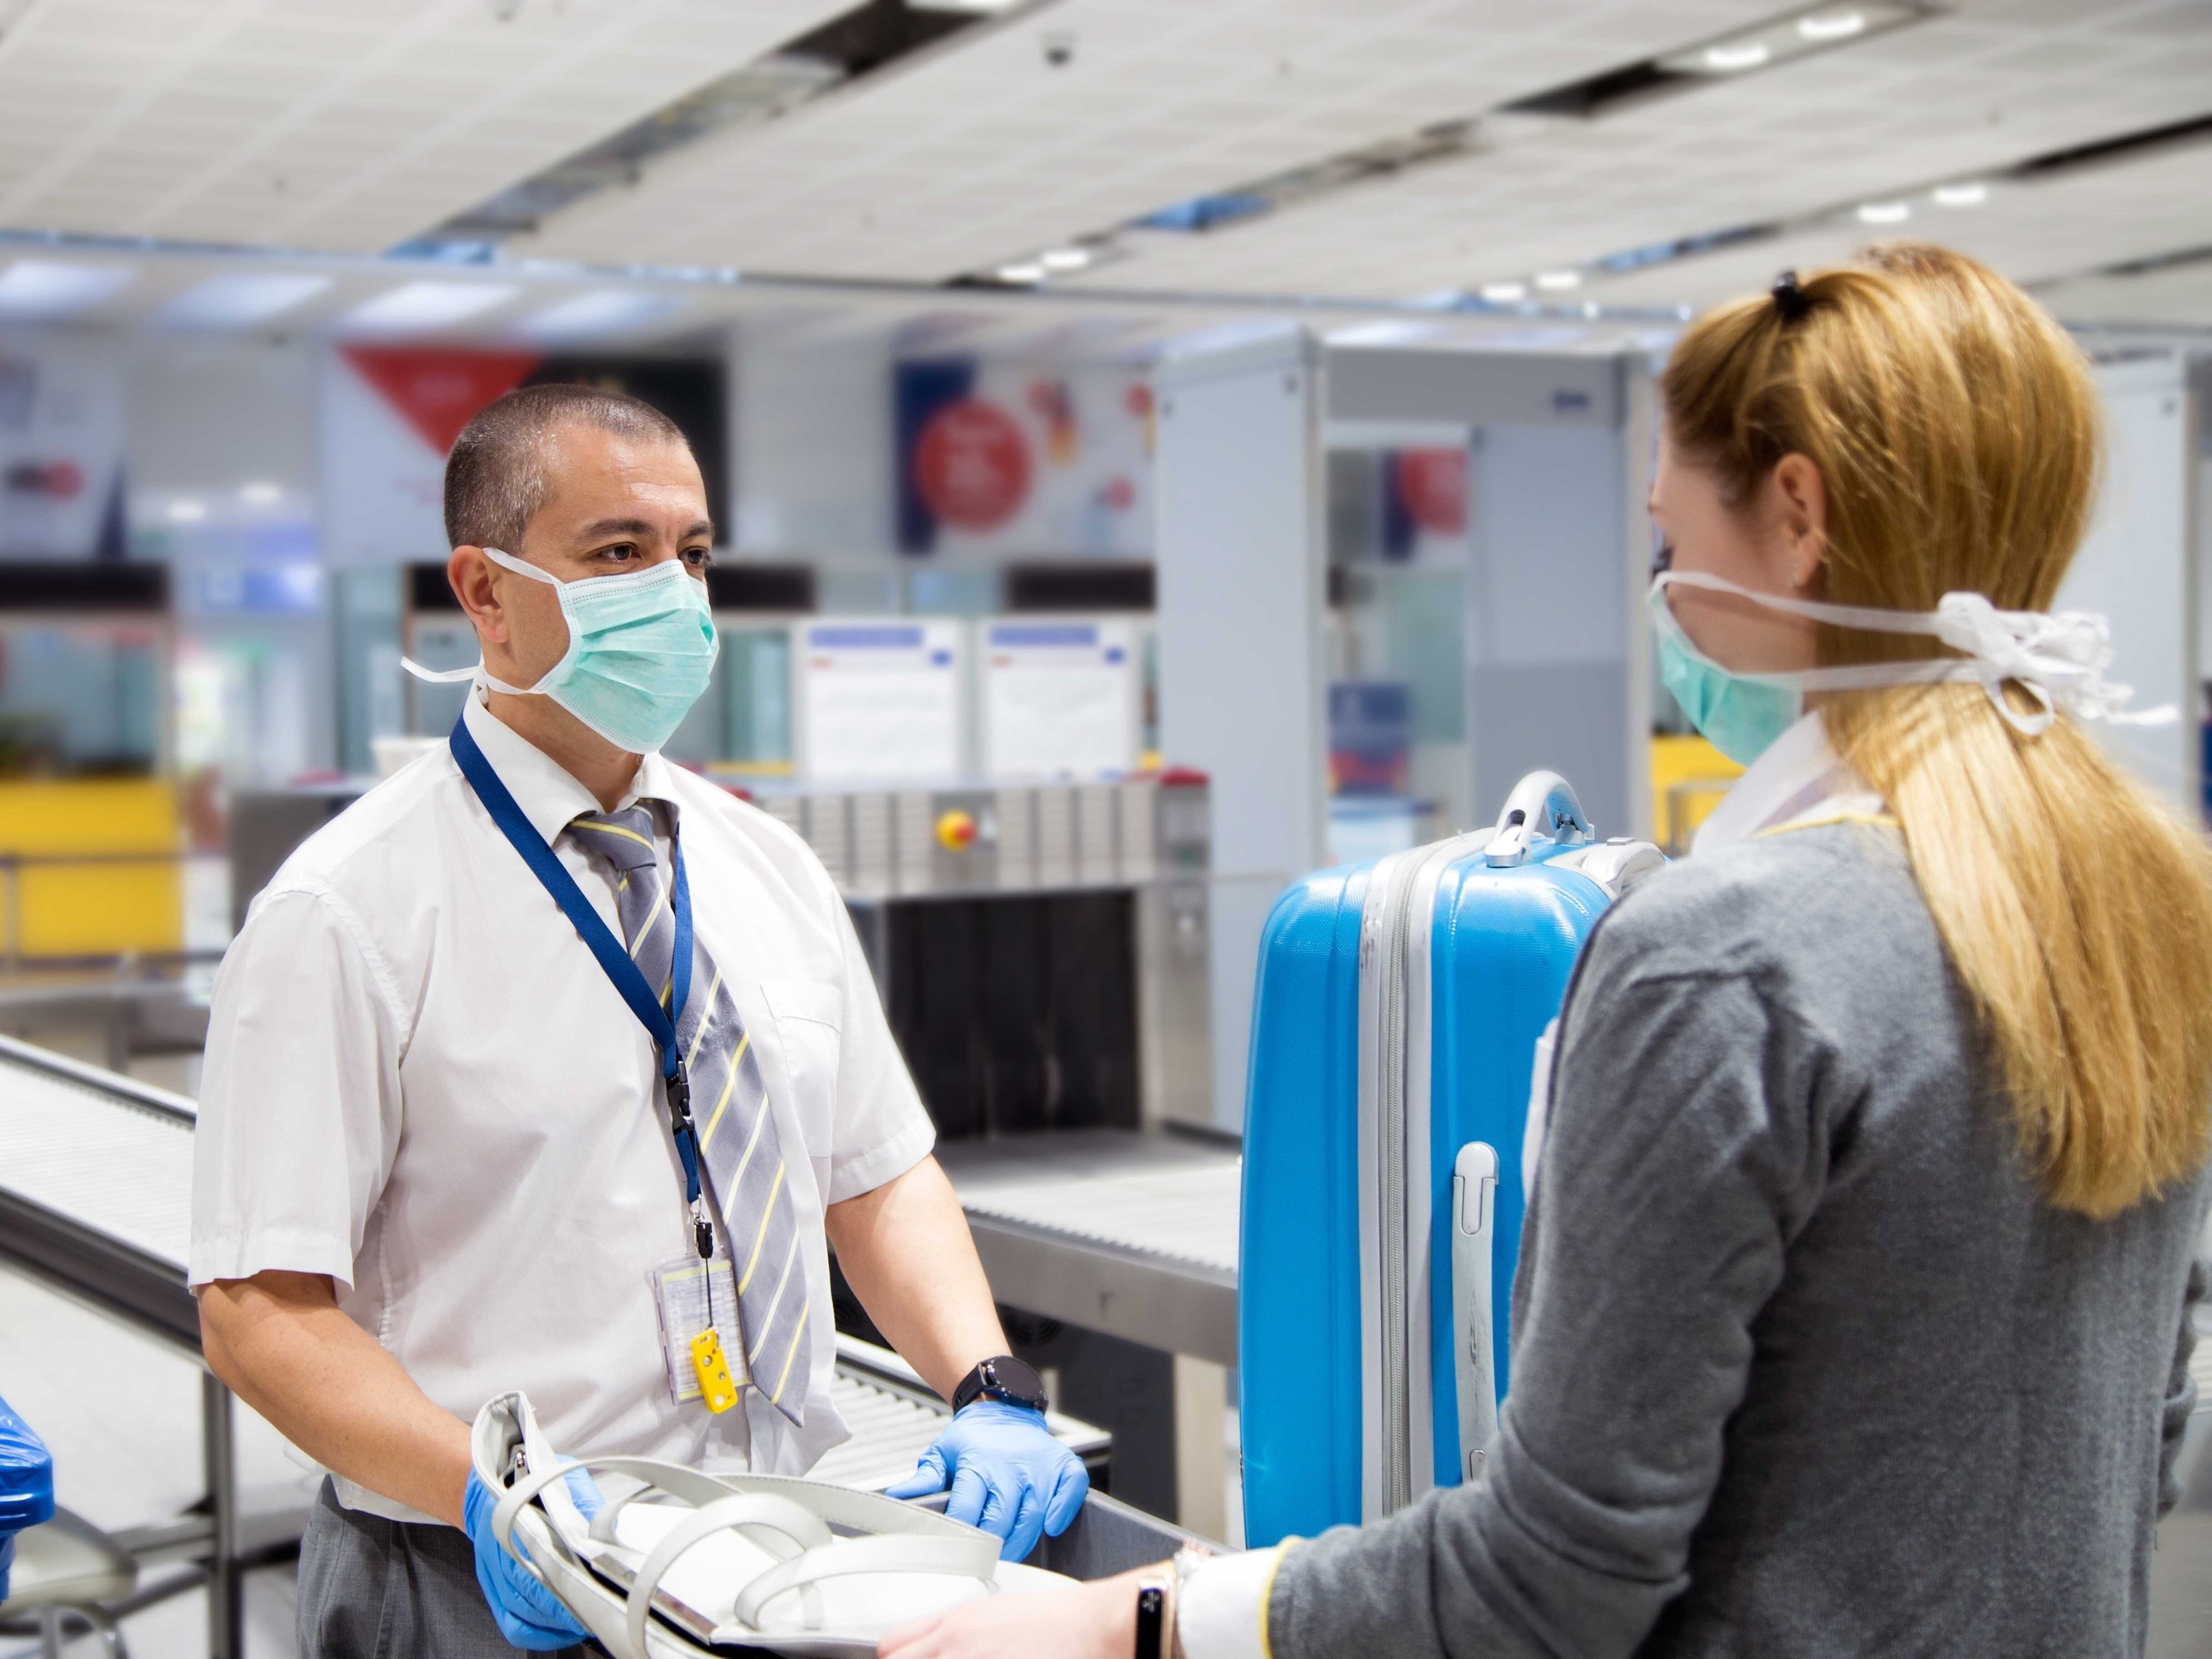 Face masks, airport, travel